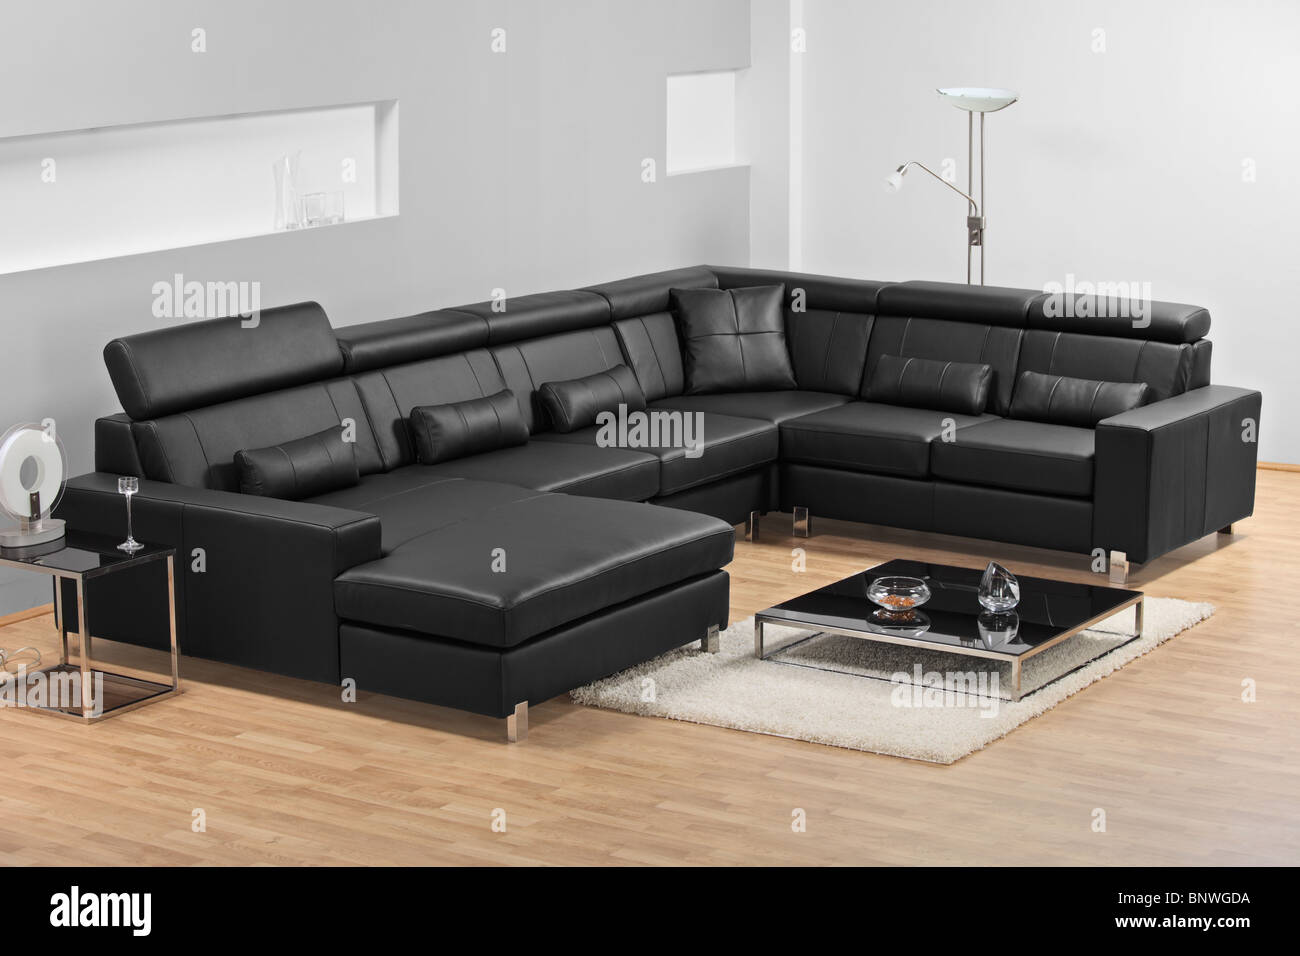 https www alamy com stock photo a view of a modern apartment with black leather sofa 30679862 html